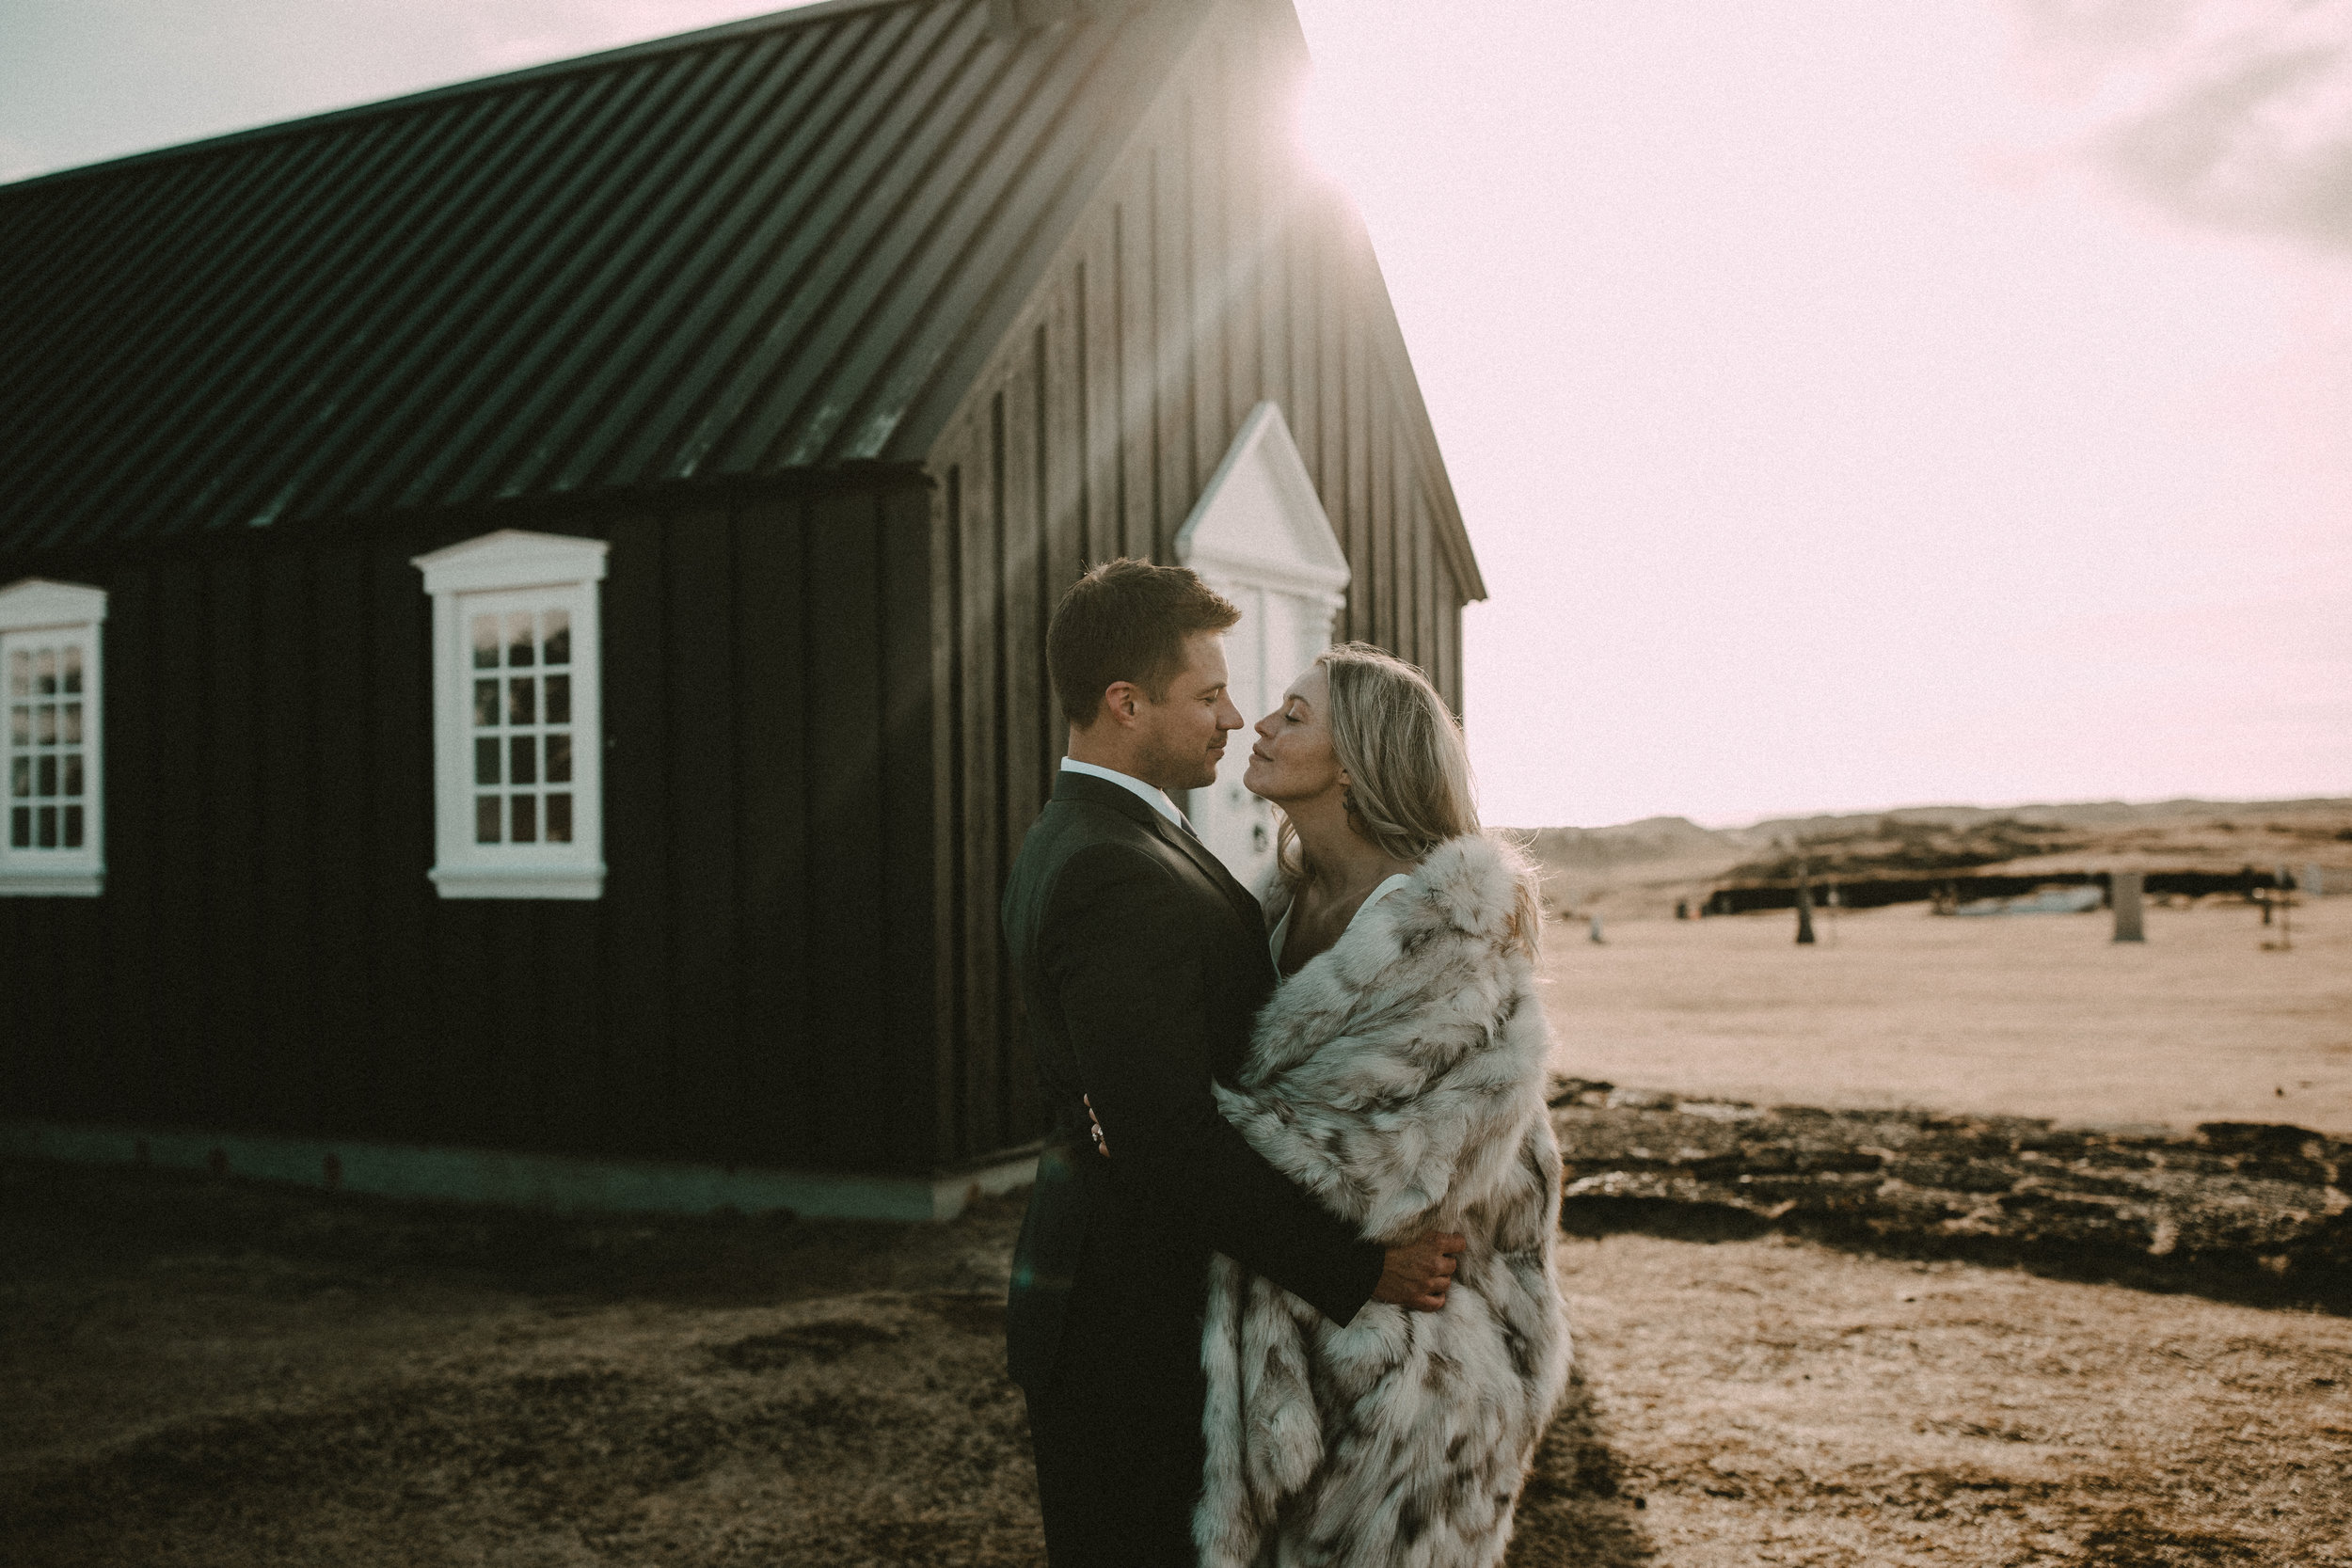 Loral & Brian - Iceland 2019